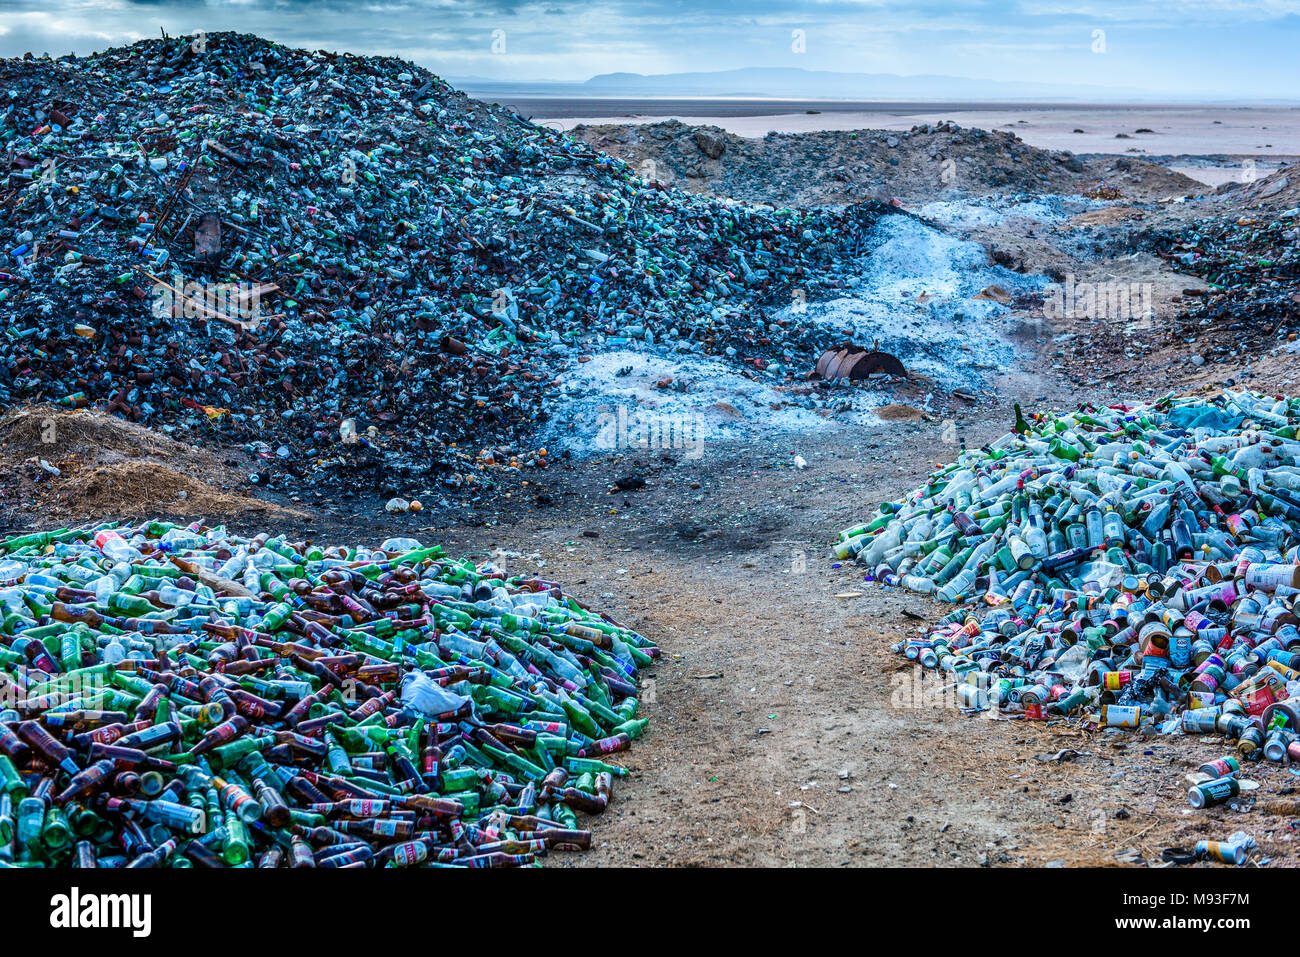 Waste separated for recycling at St Nowhere on Namibia's Skeleton Coast - Stock Image